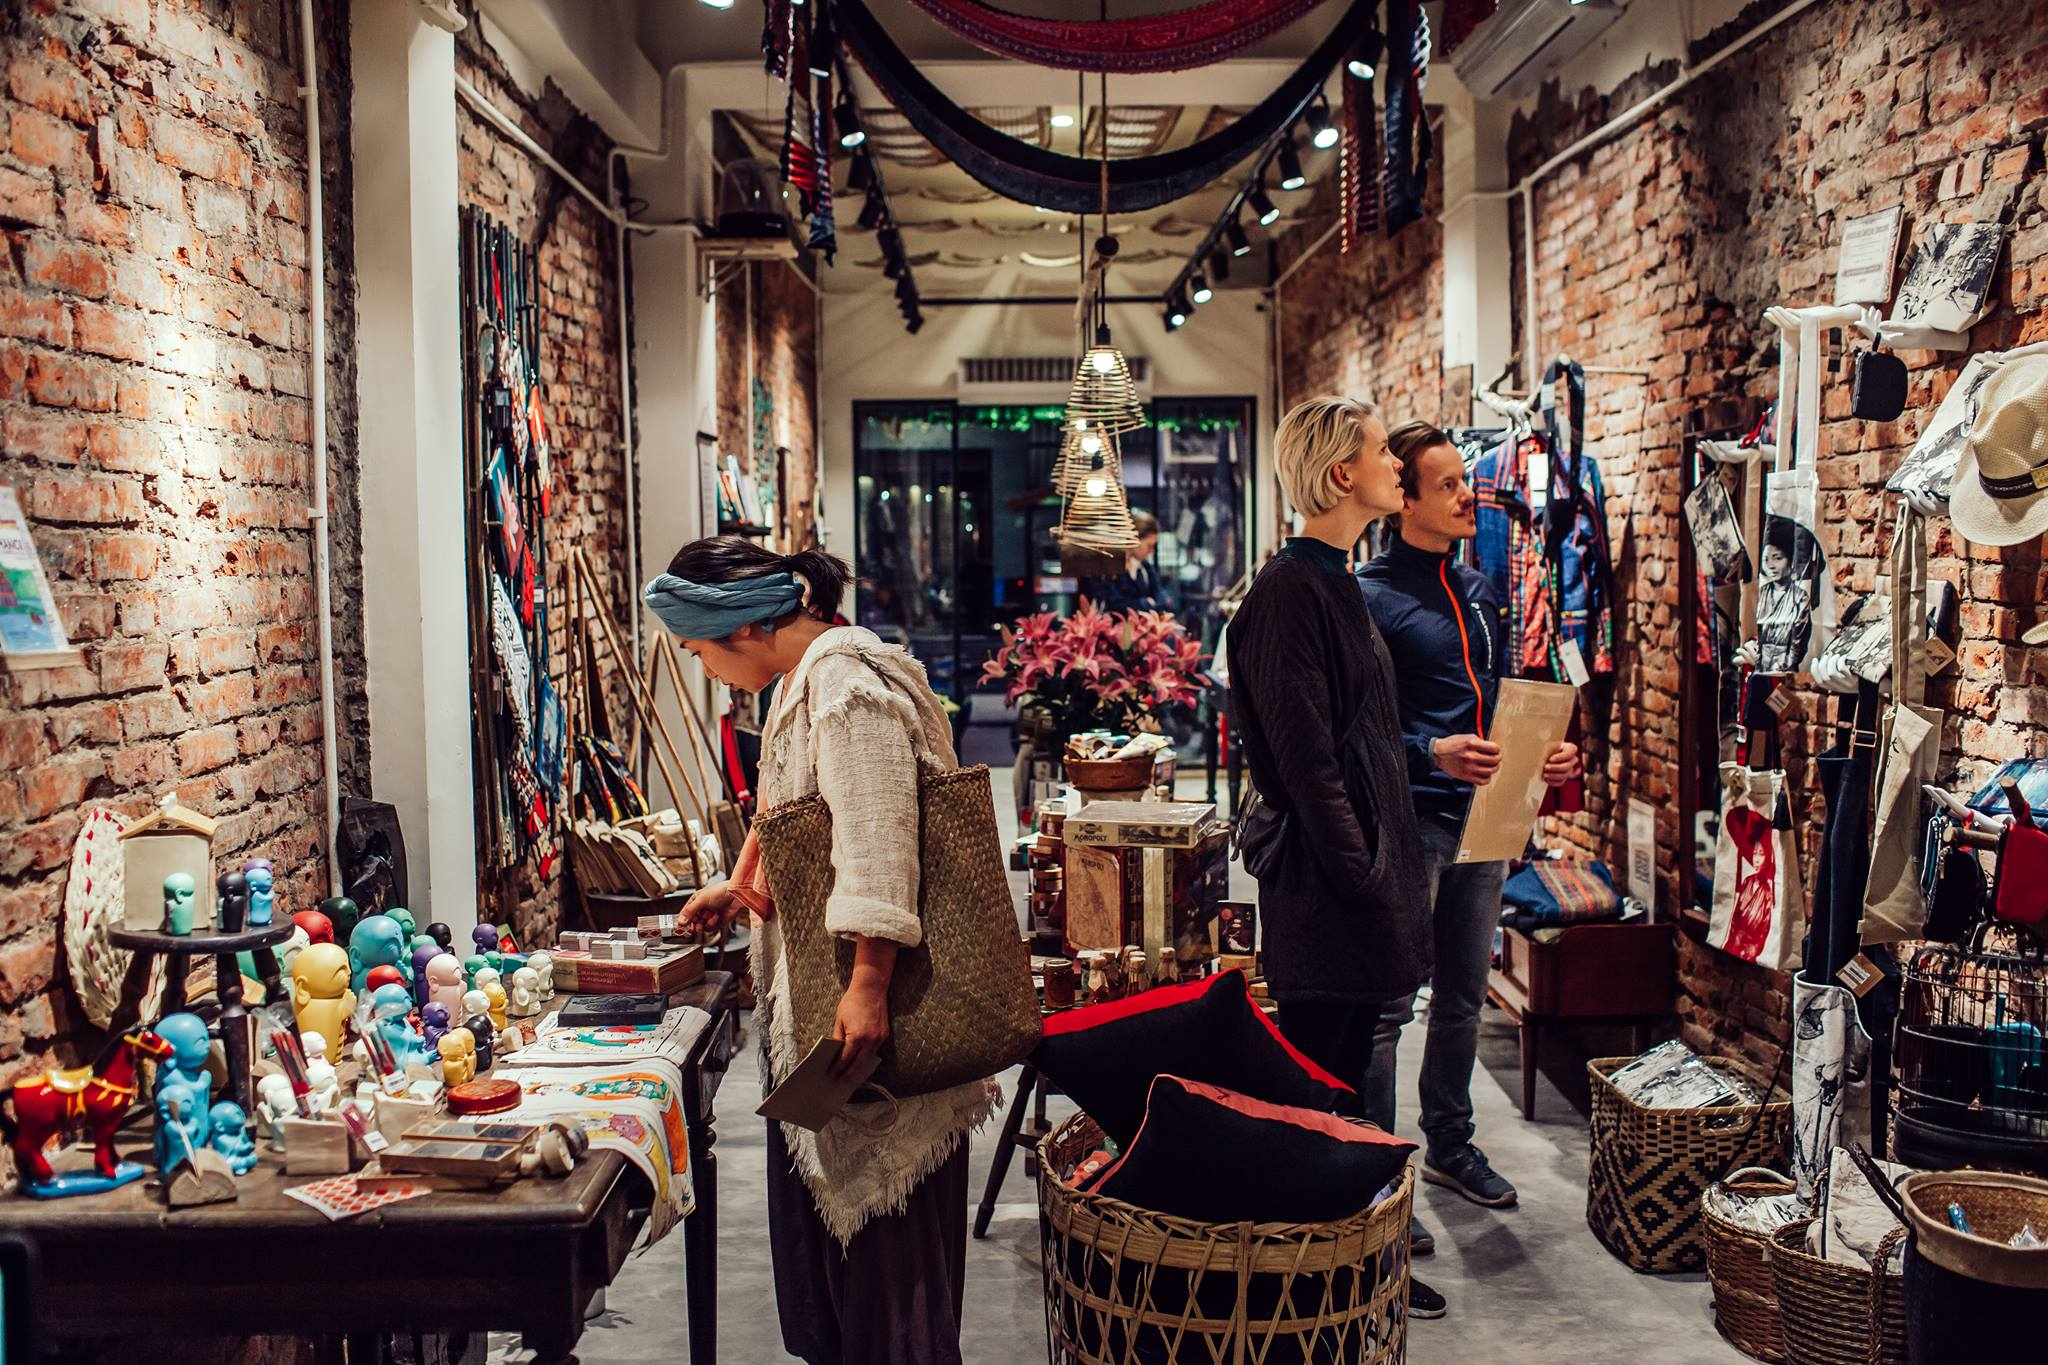 Confessions of a Shopaholic: Guide to Shopping in Hanoi